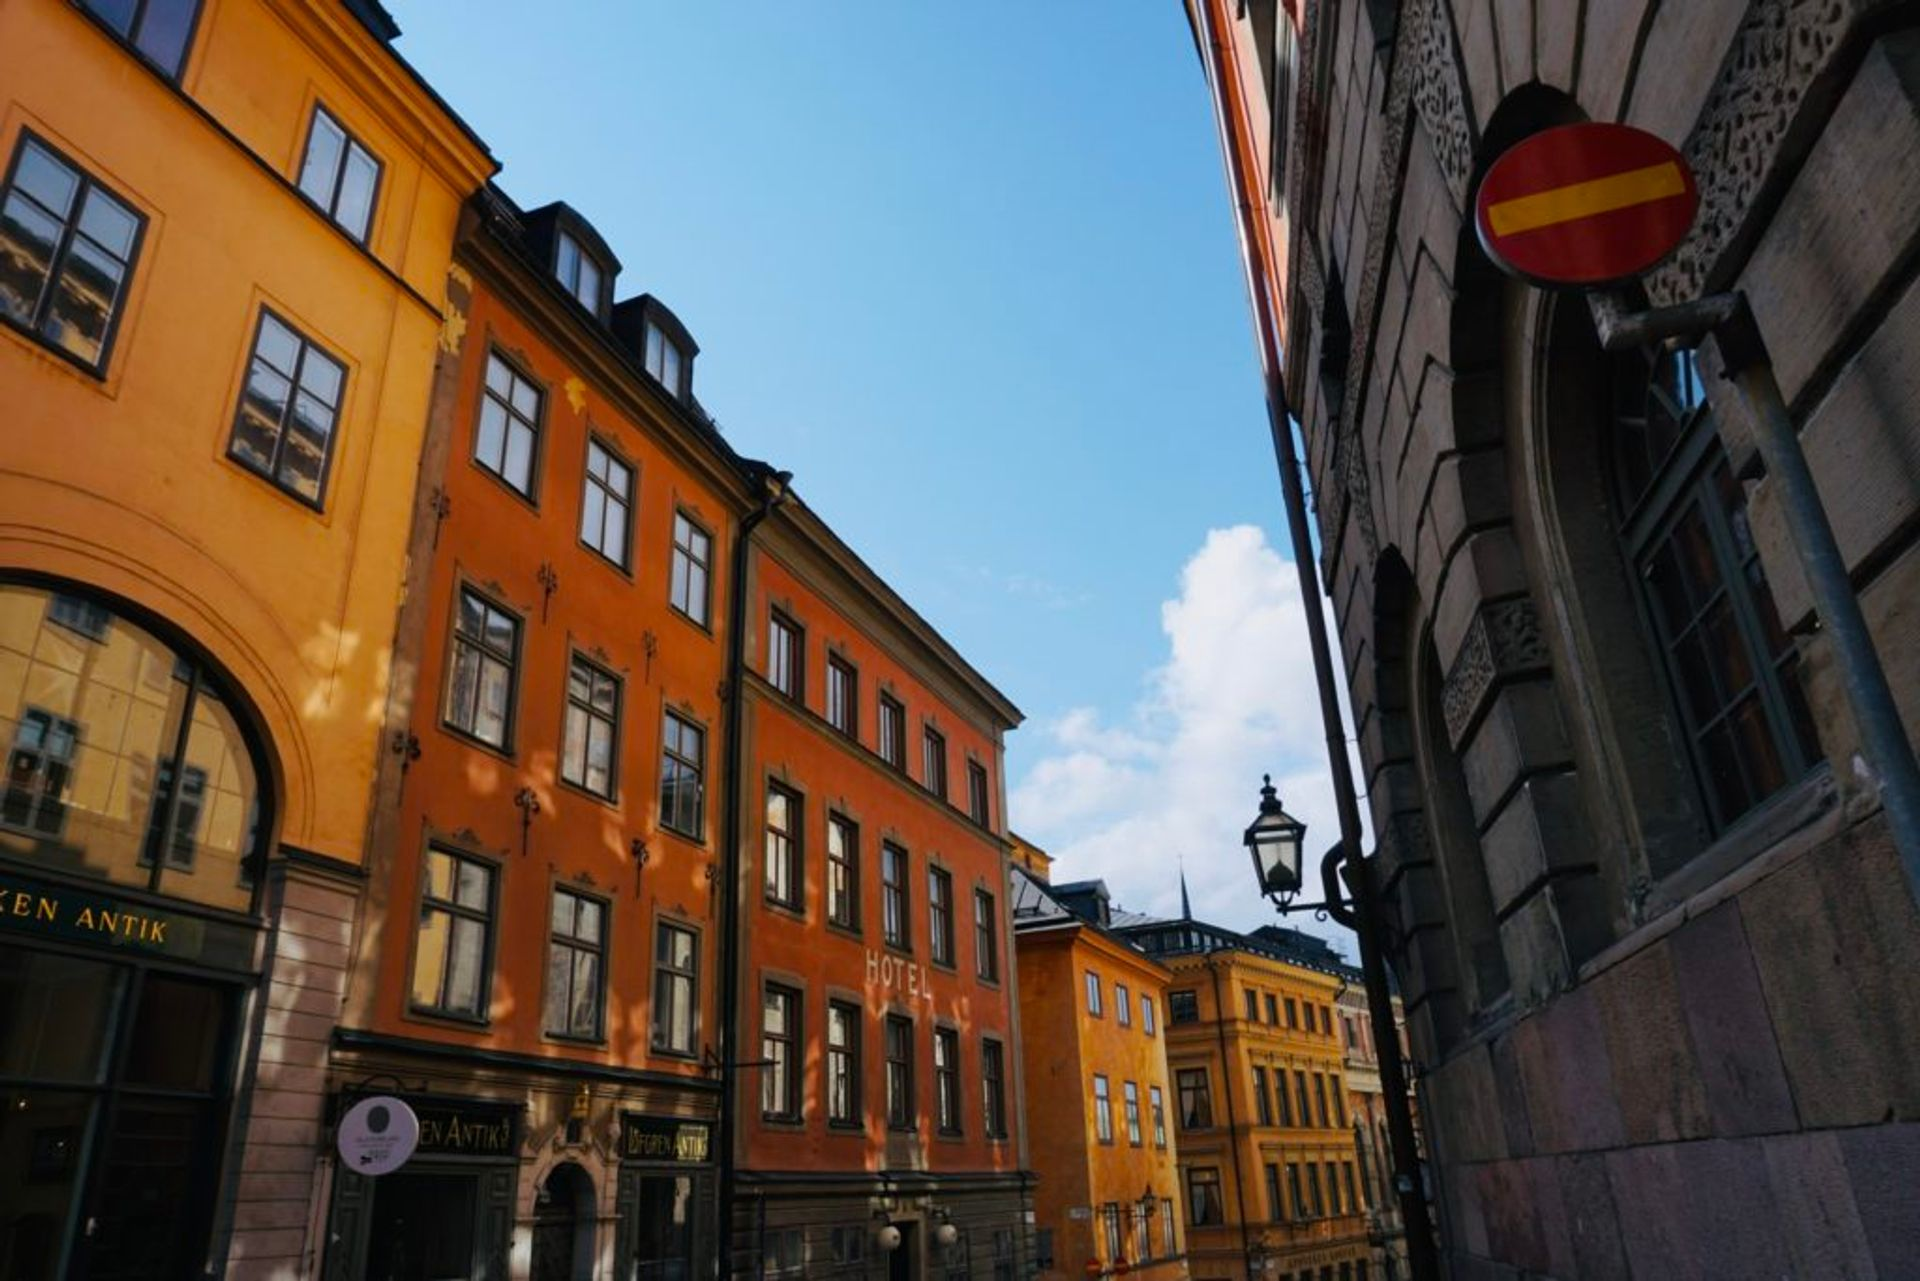 Colourful building in Stockholm's Old Town.